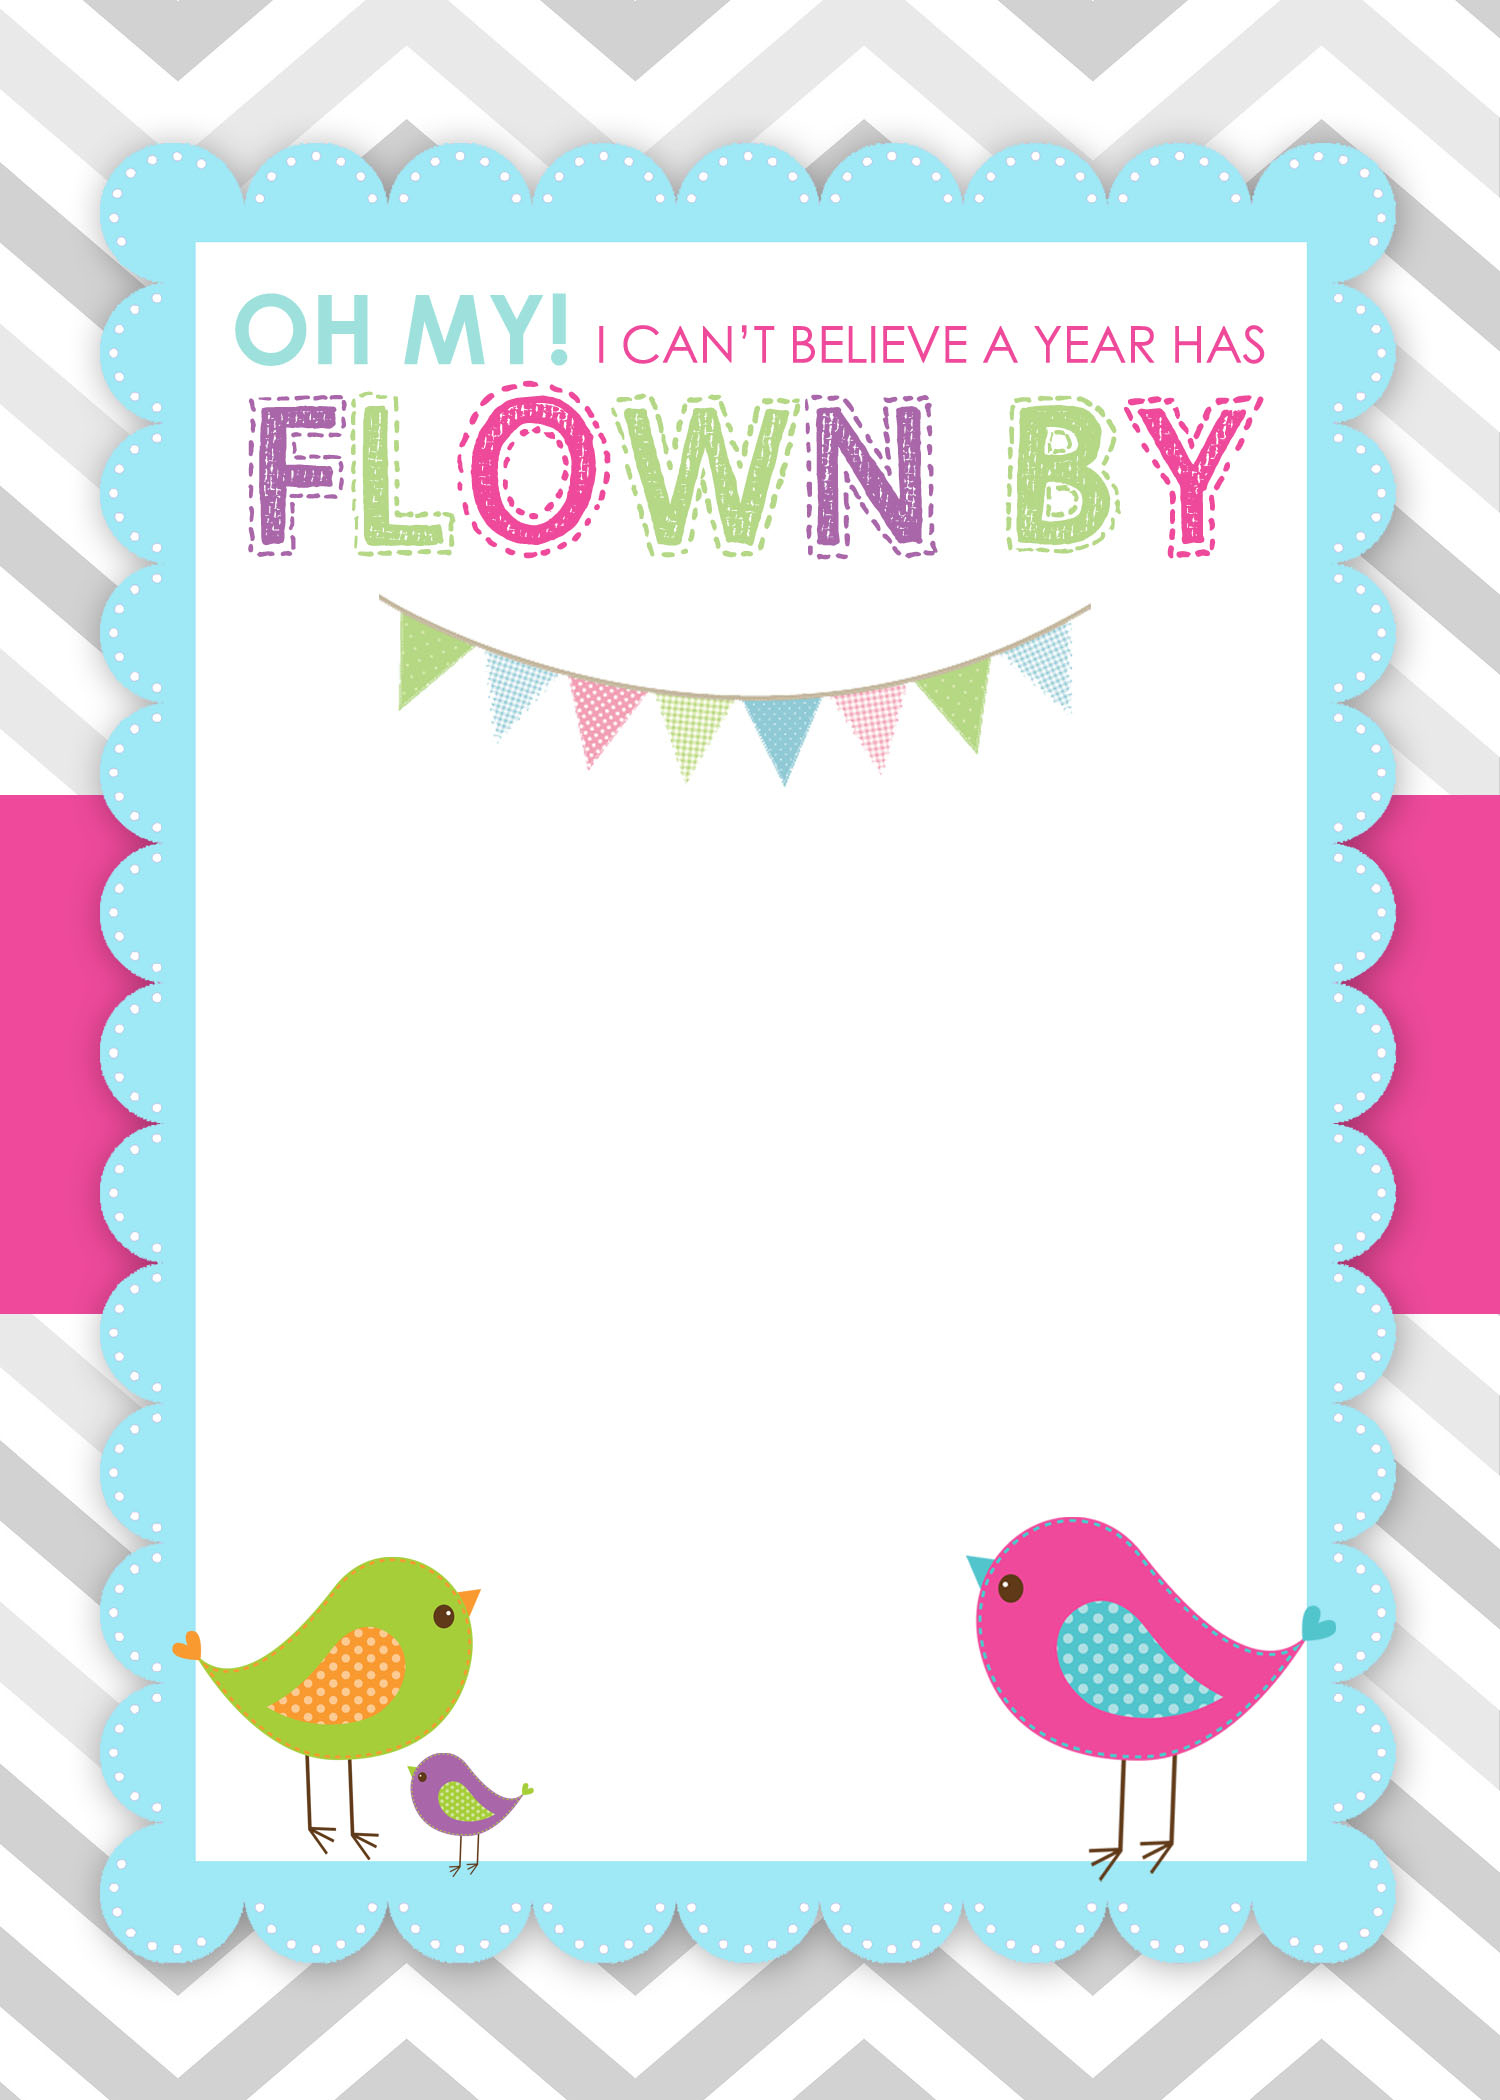 Bird Birthday Party With Free Printables - How To Nest For Less™ - Free Printable Polka Dot Birthday Party Invitations